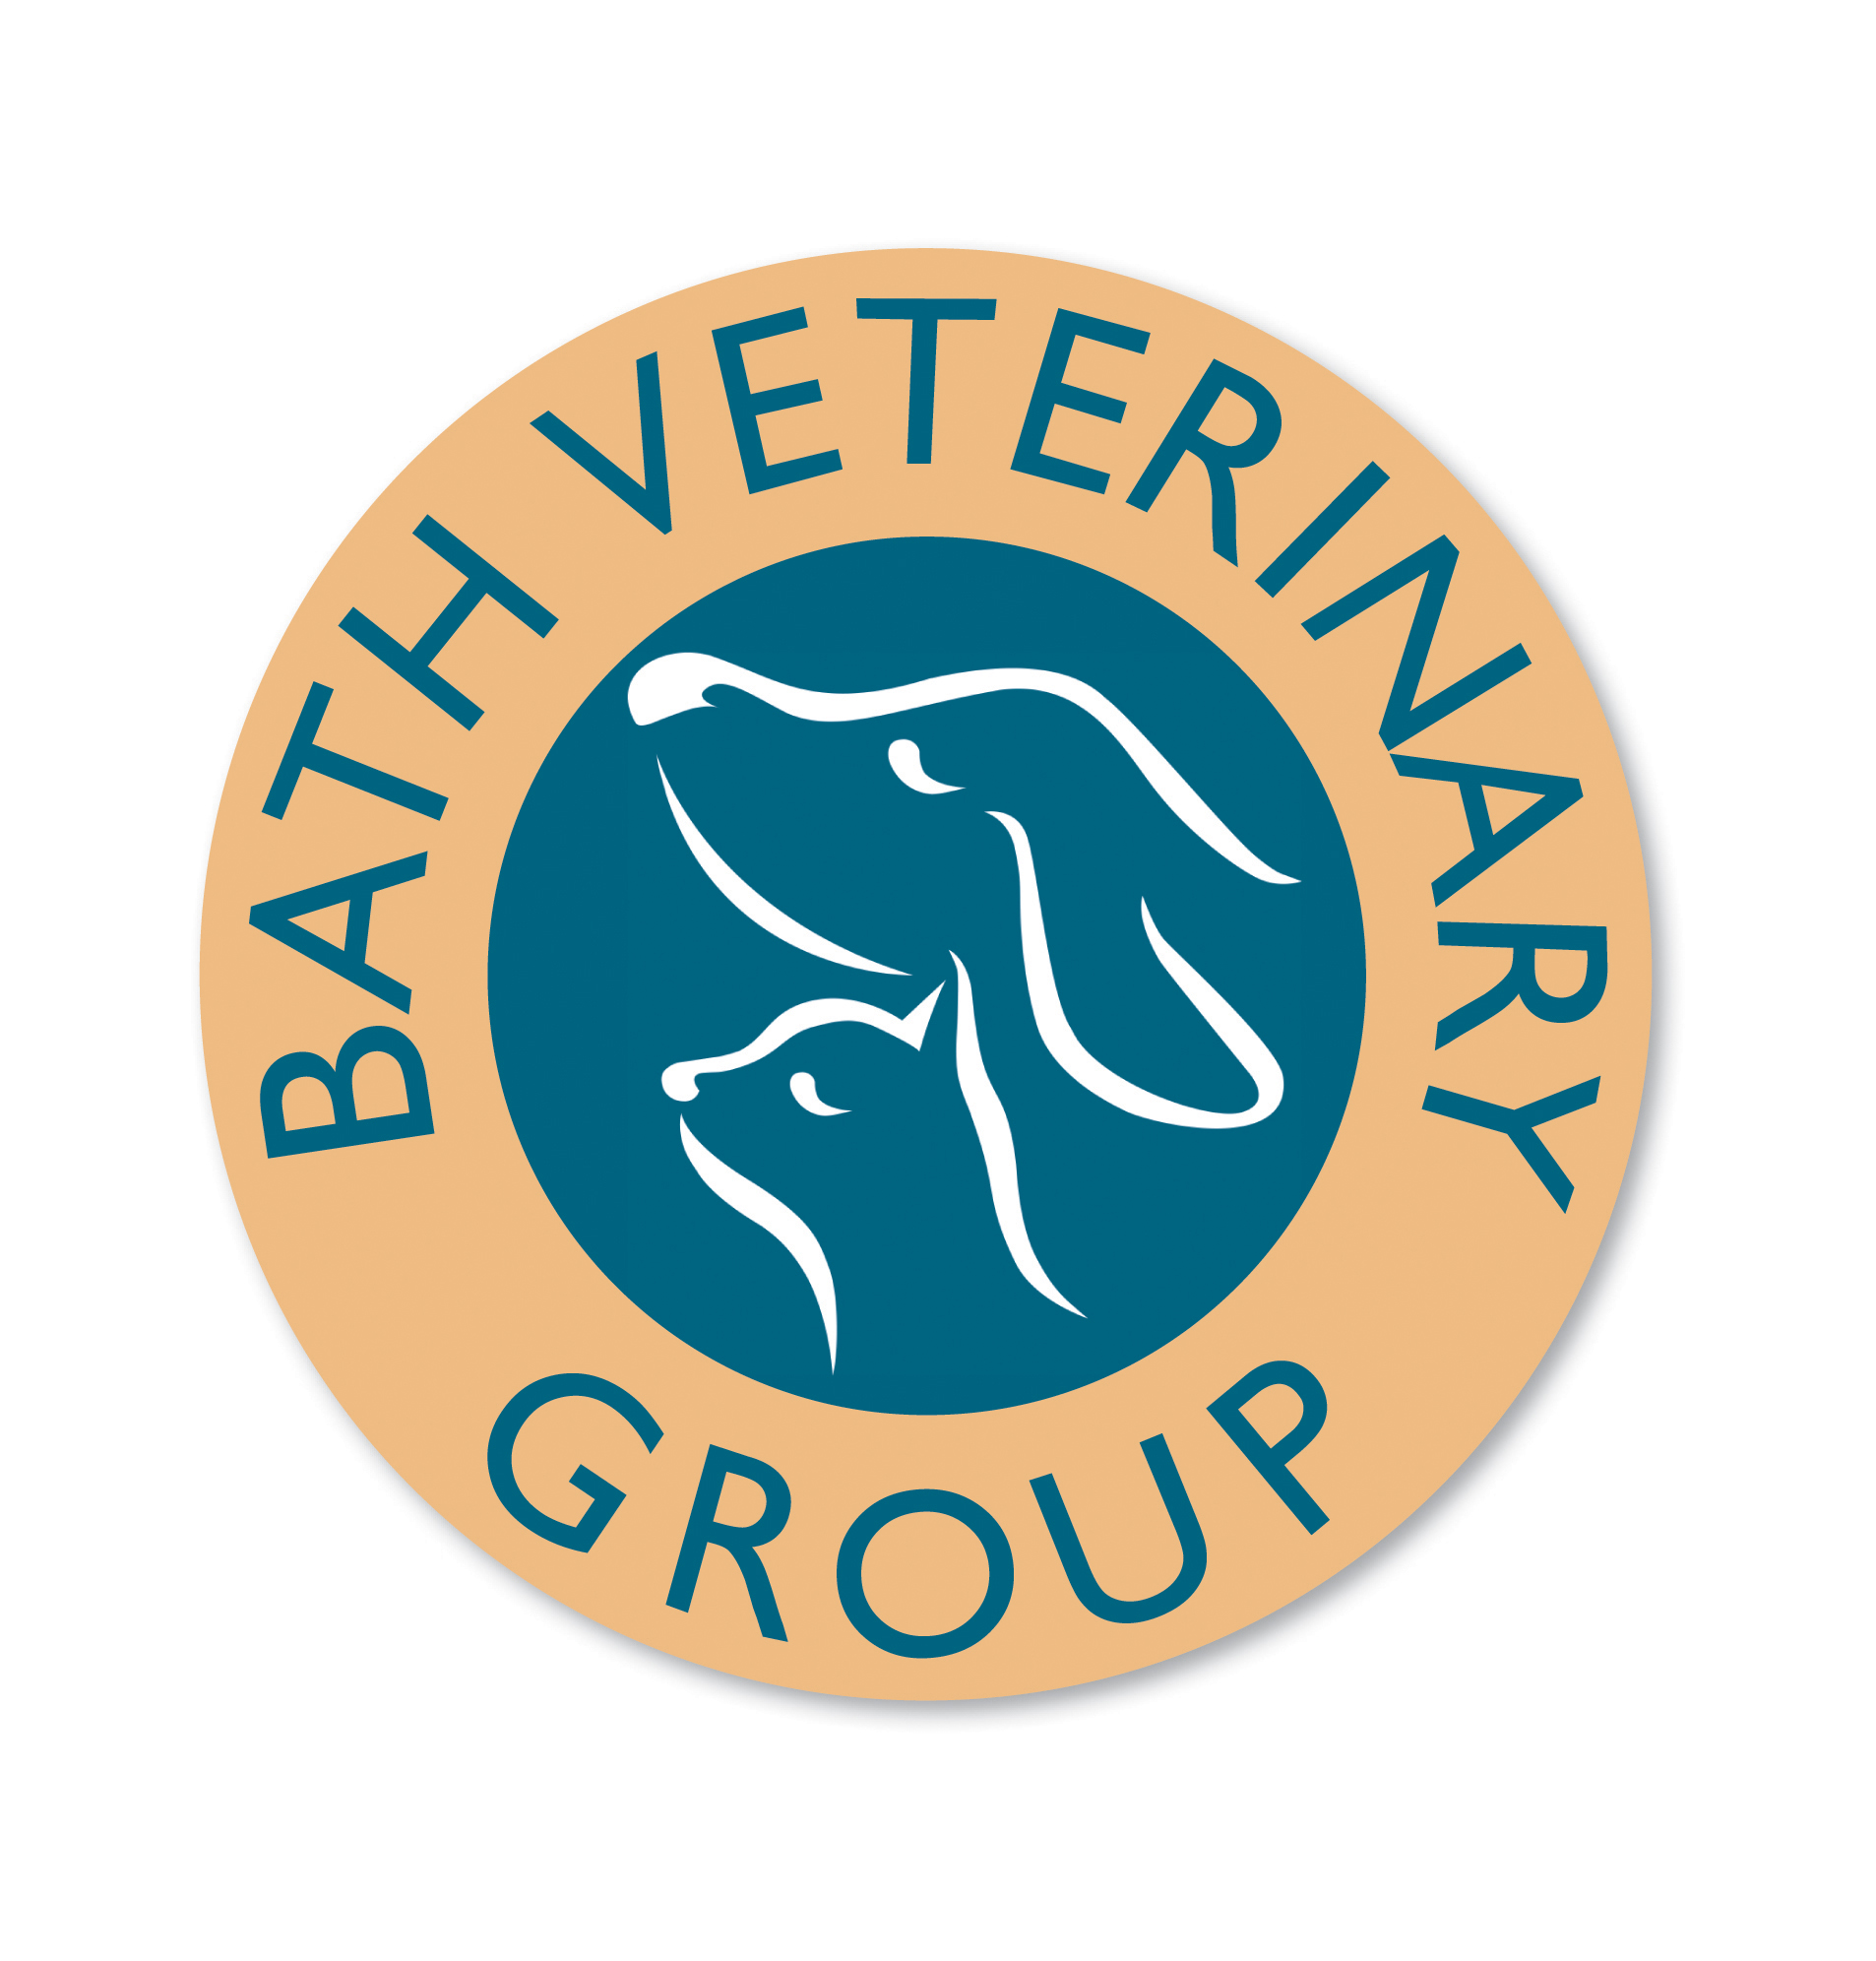 Bath Veterinary Group - Station Road